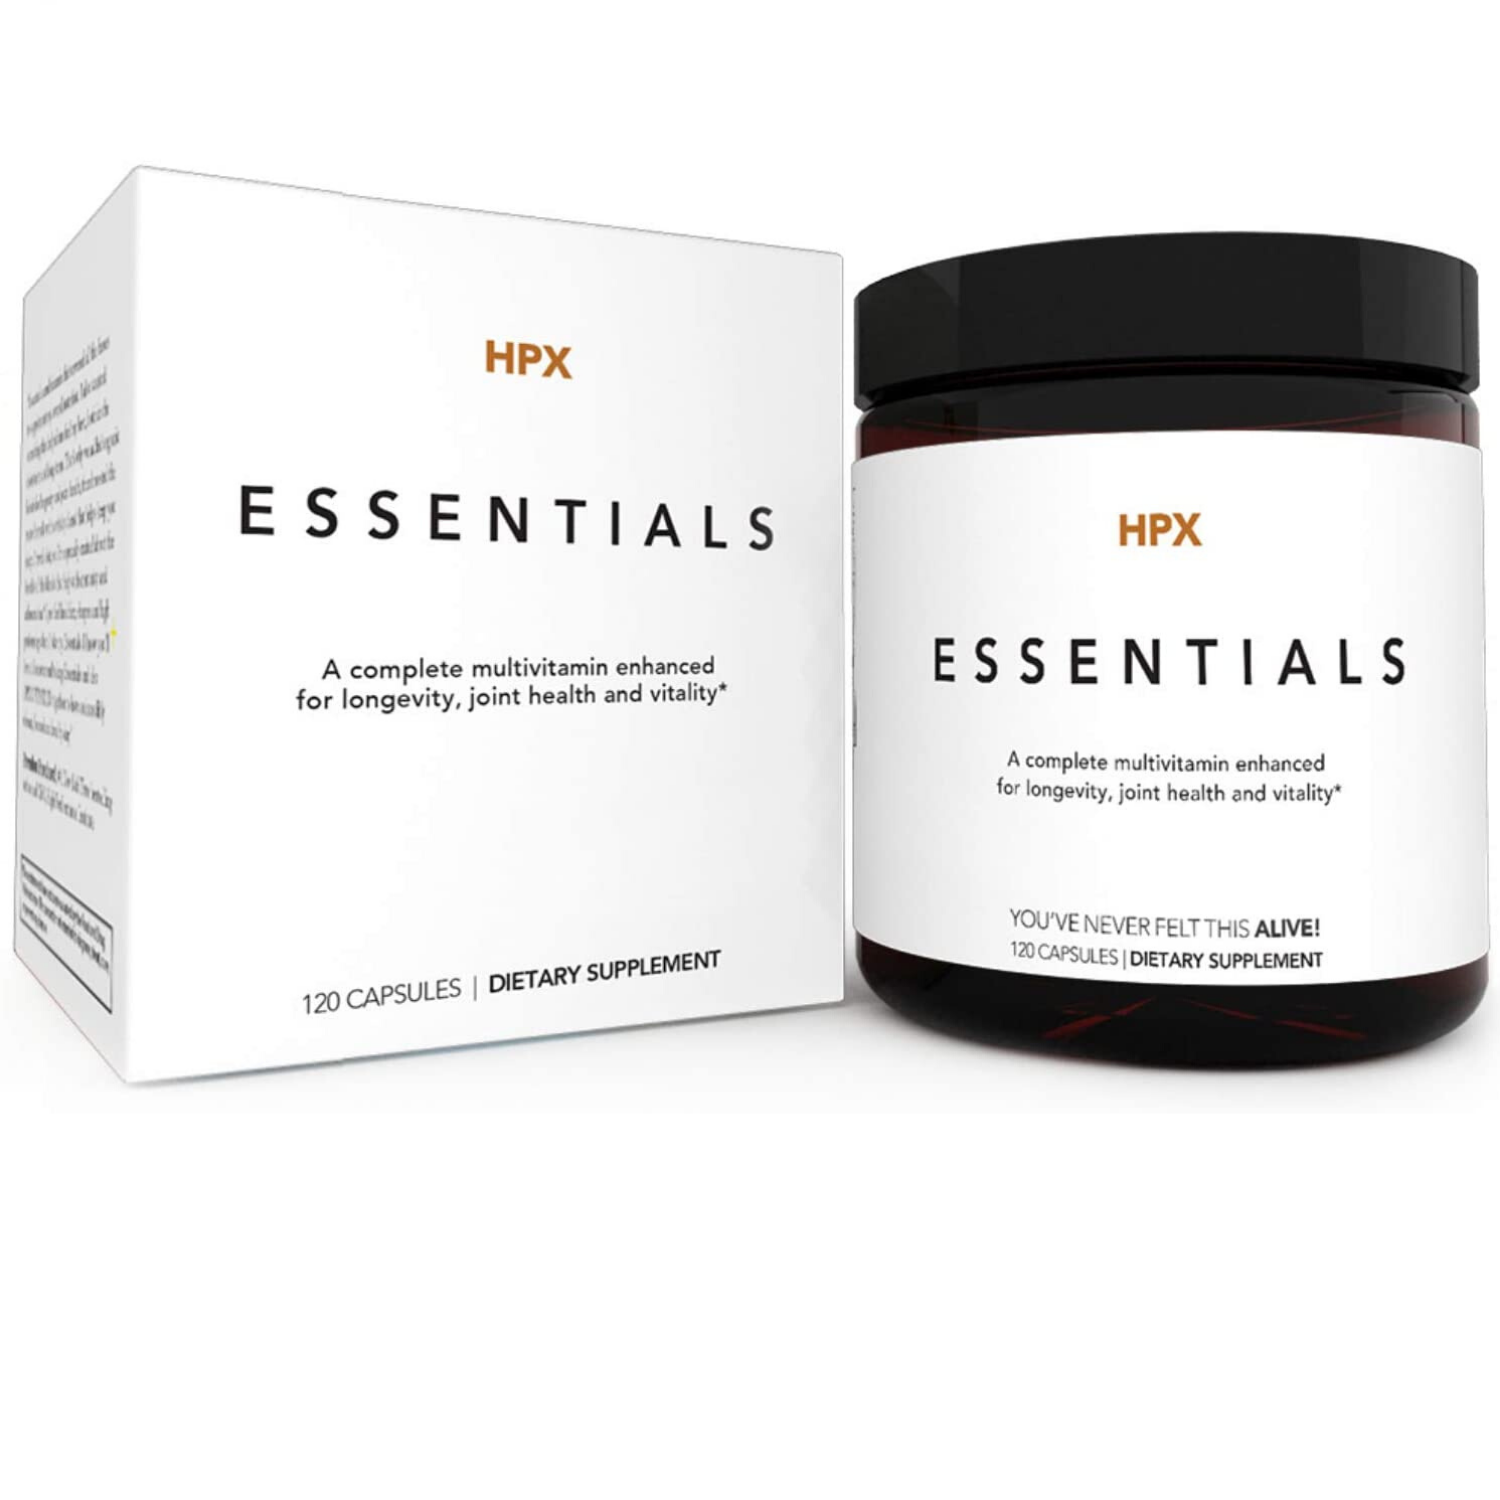 HPX Essentials